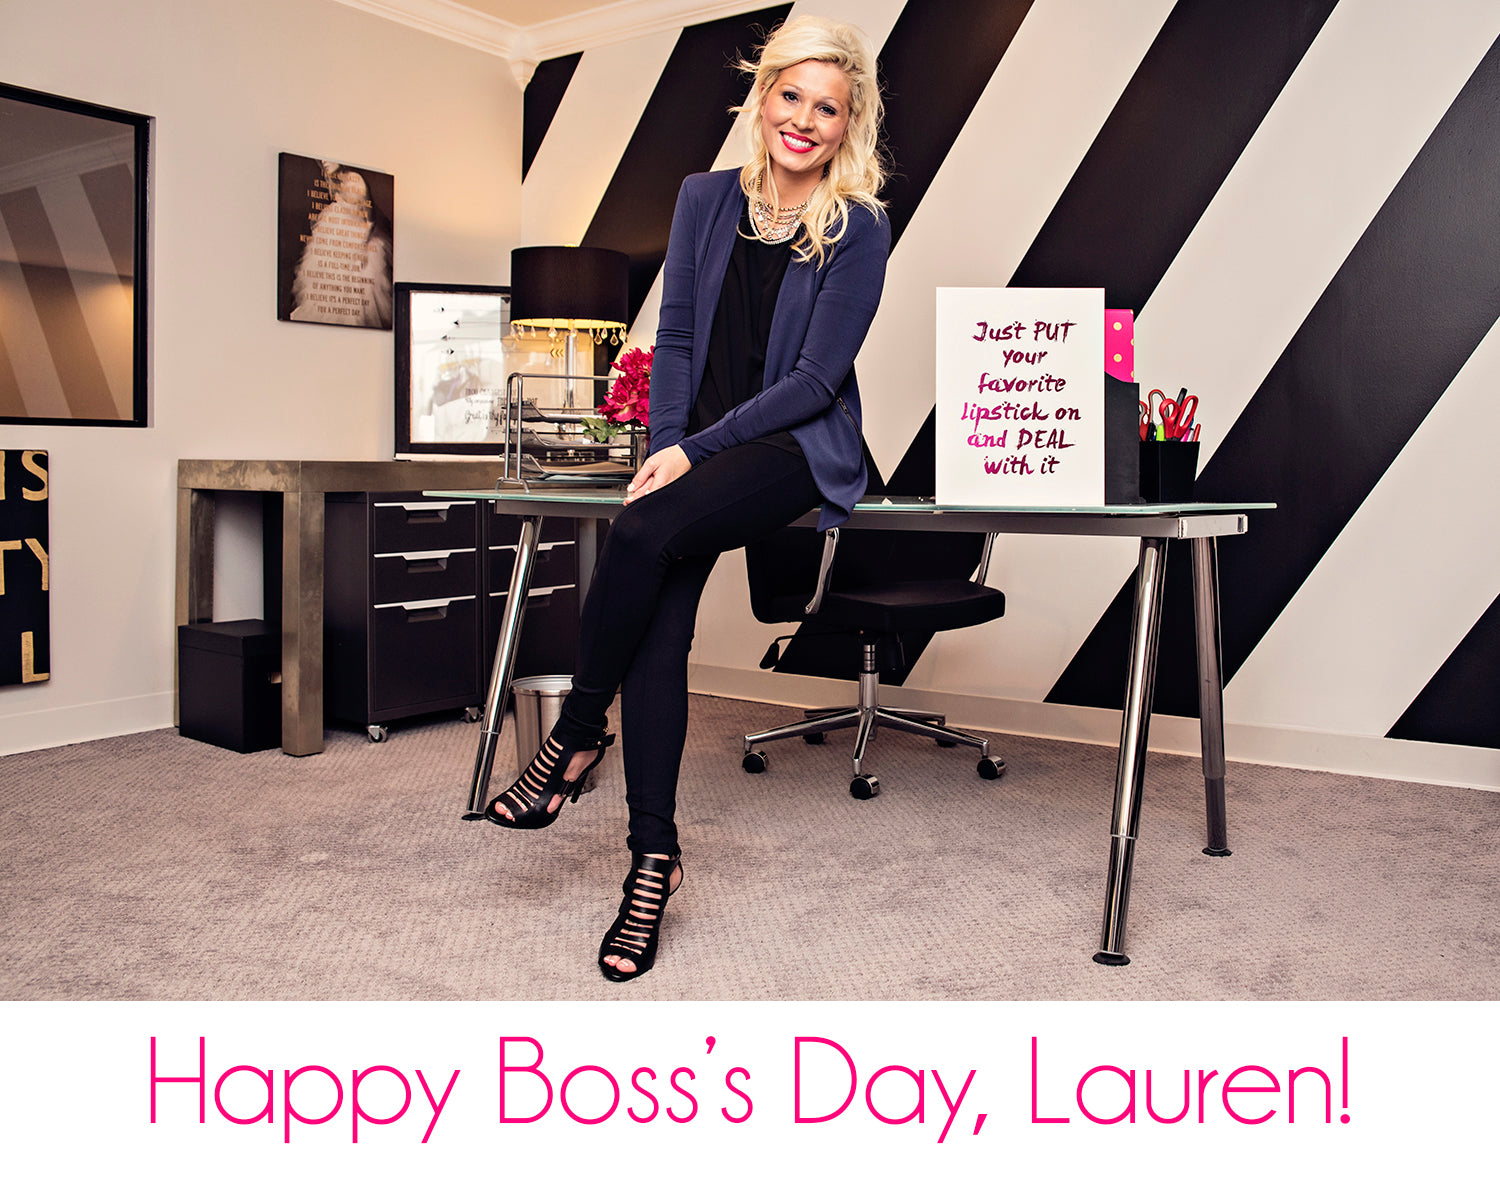 Happy Boss's Day to Lauren Craig of Eccentrics Boutique